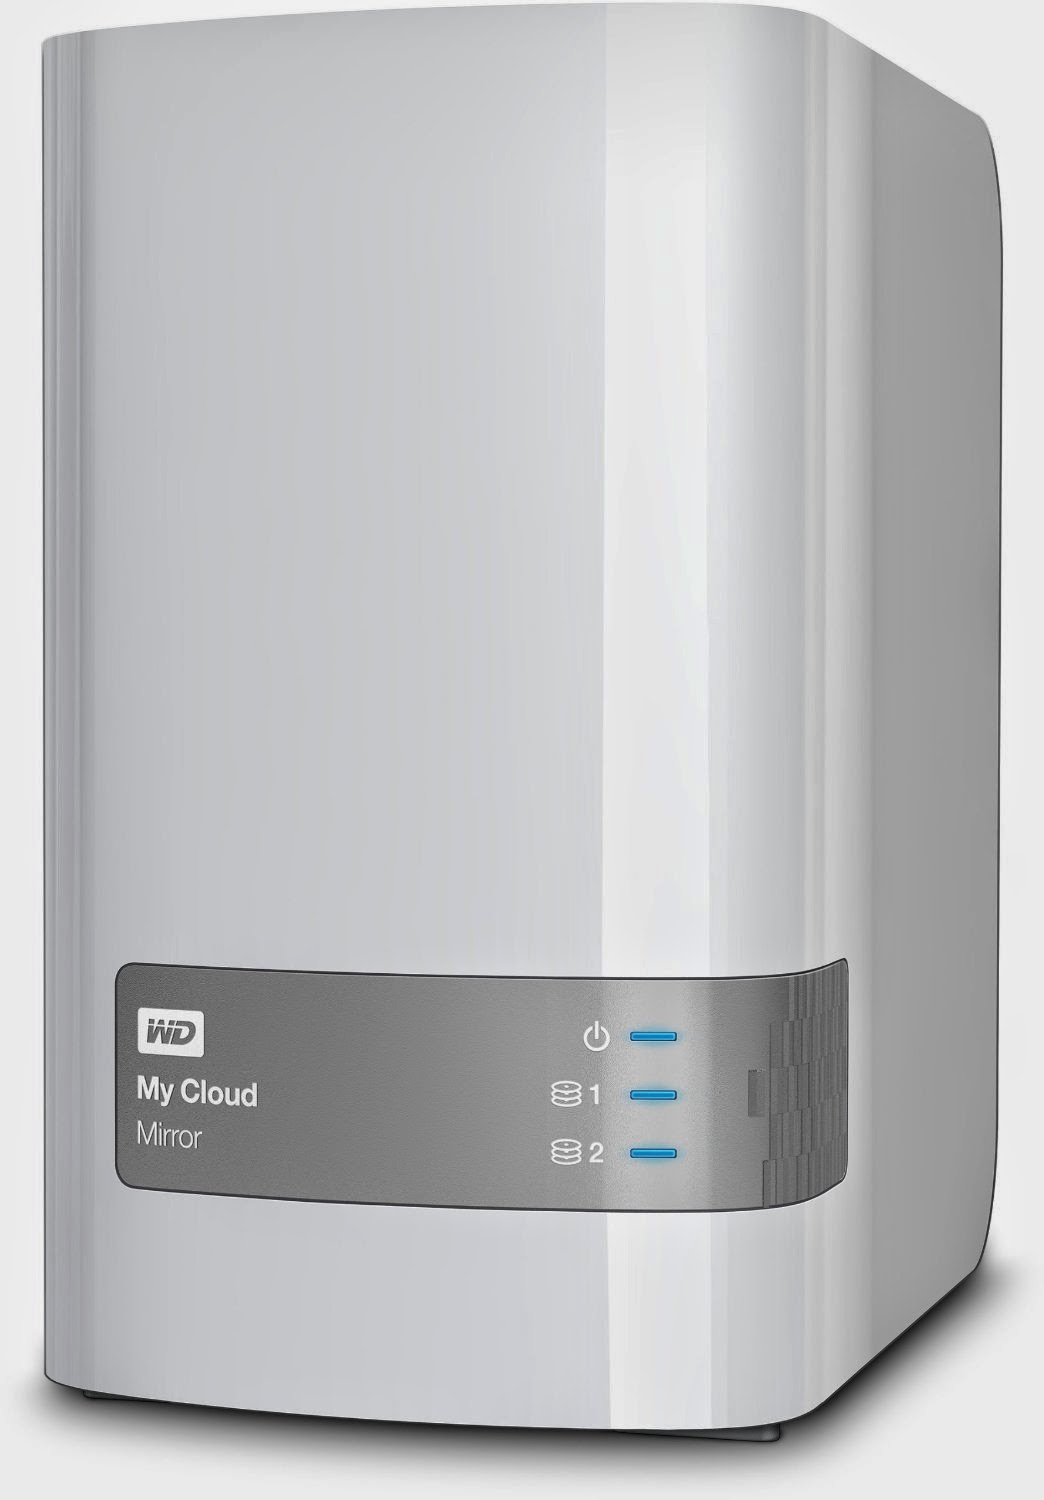 WD My Cloud Mirror NAS Drive Review